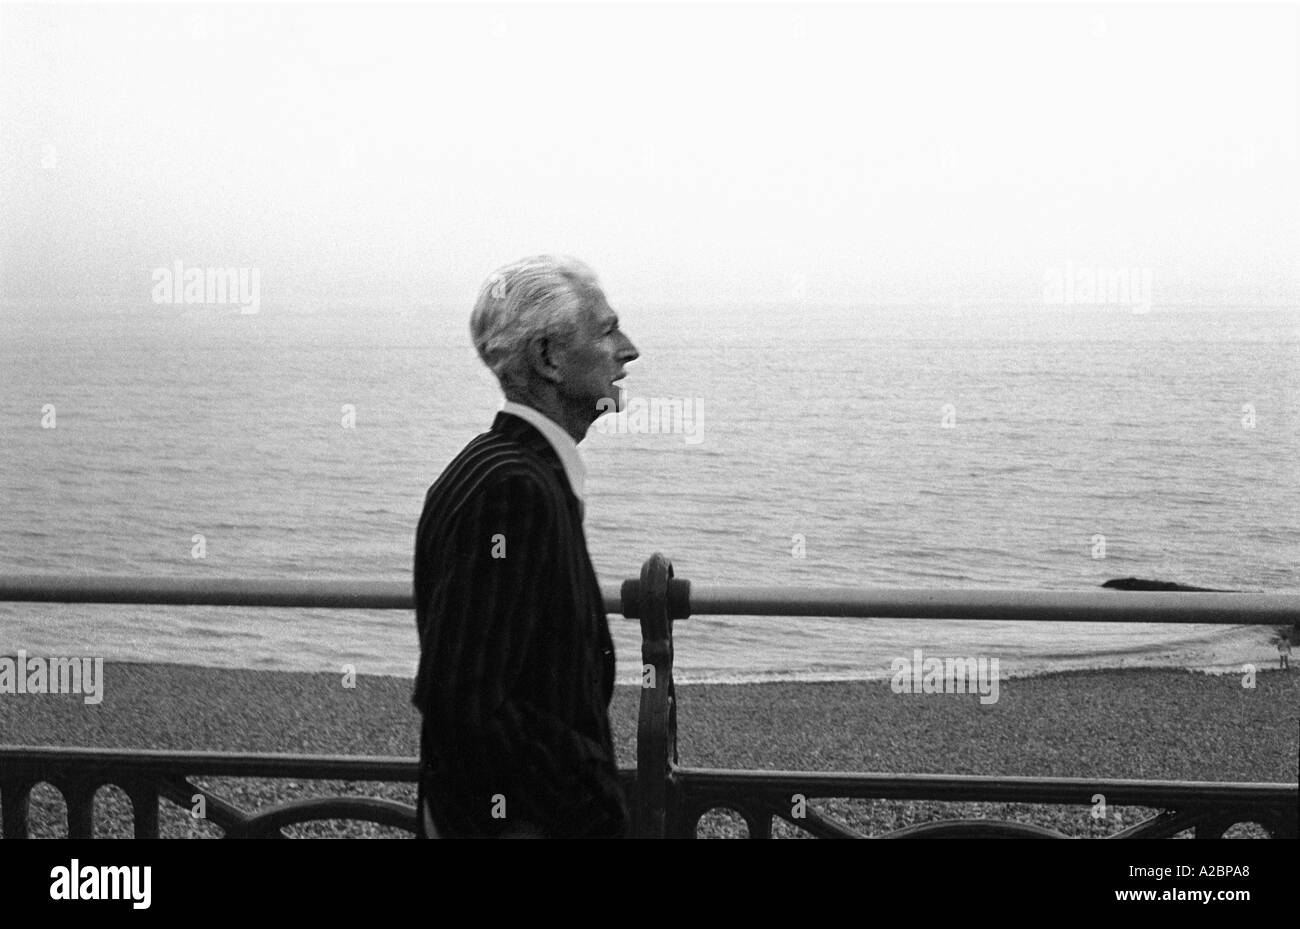 Retired man walking on sea front Brighton 1979 35mm b/w - Stock Image